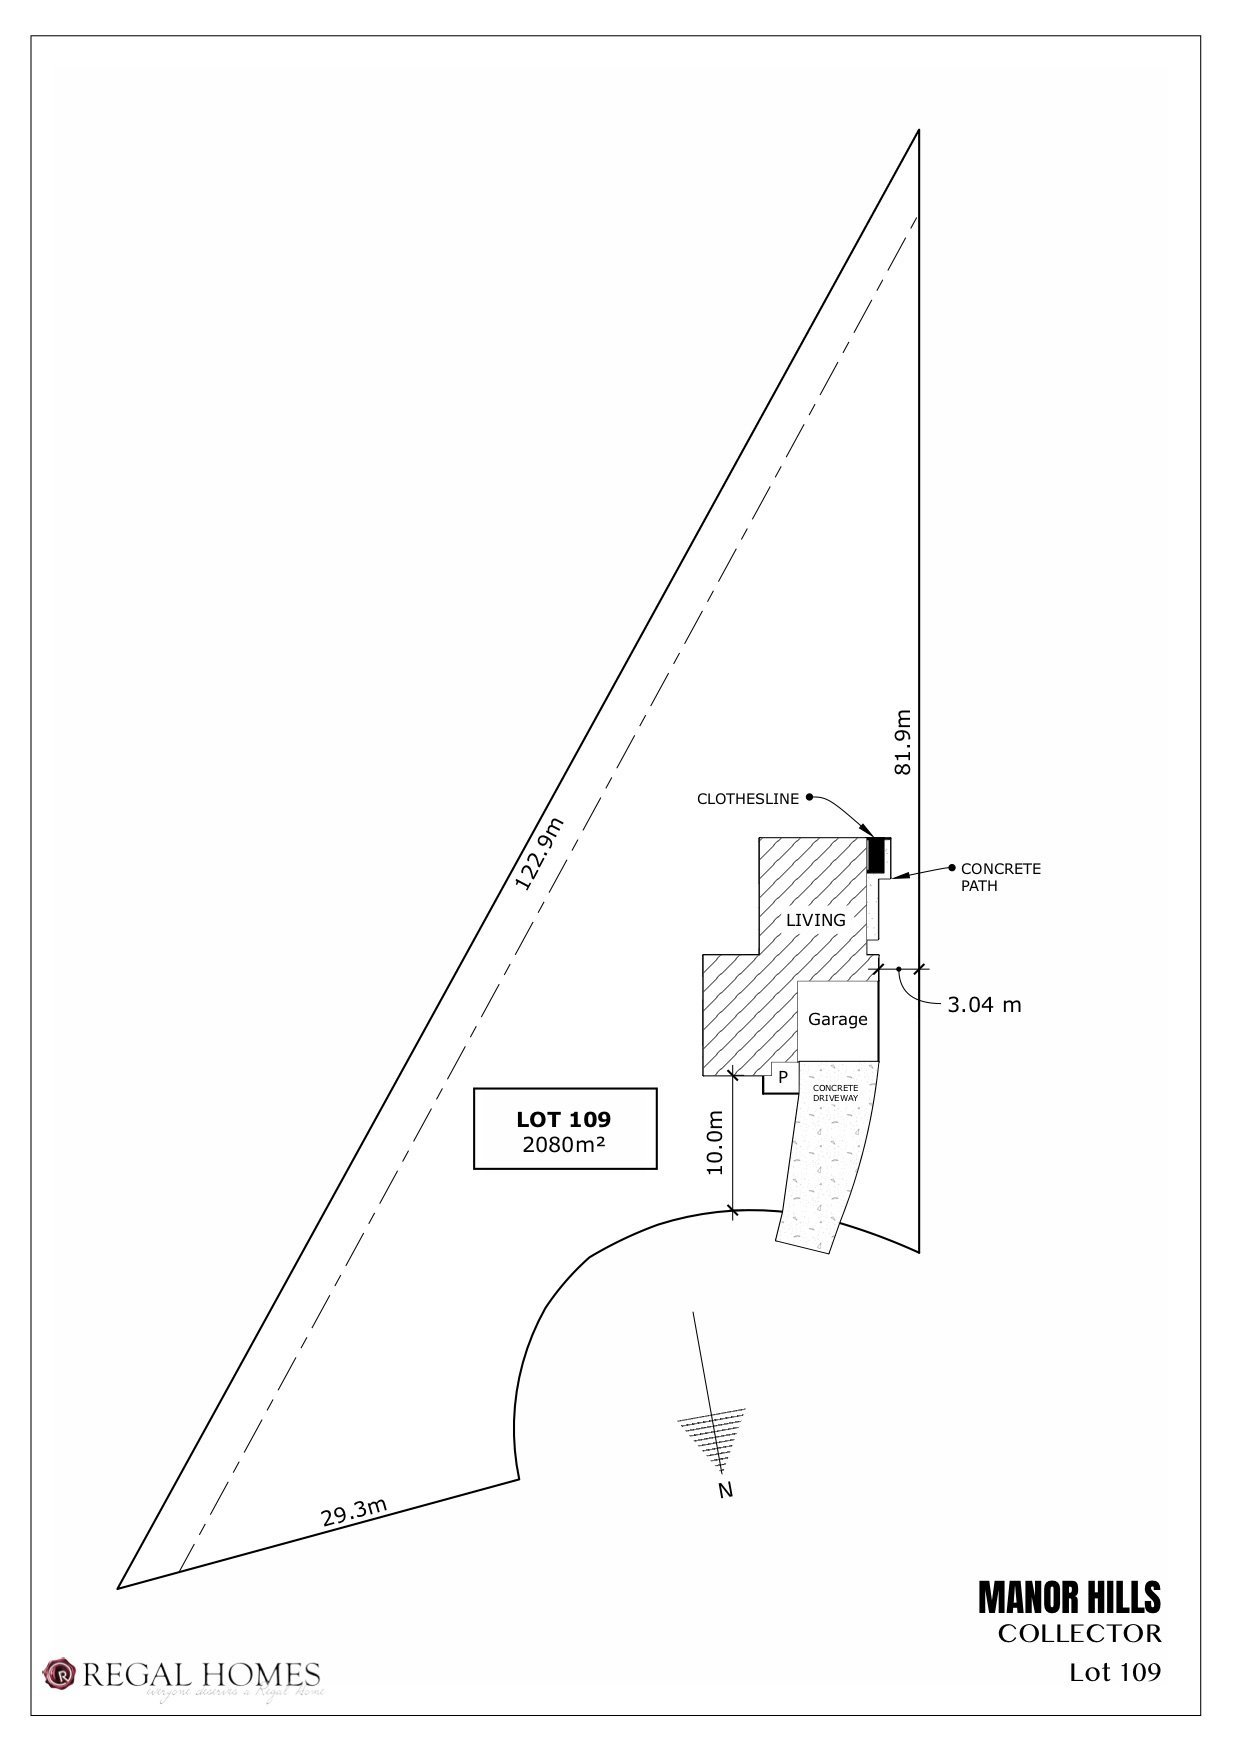 Lot 109 Collector - Site Plan (Lucca)